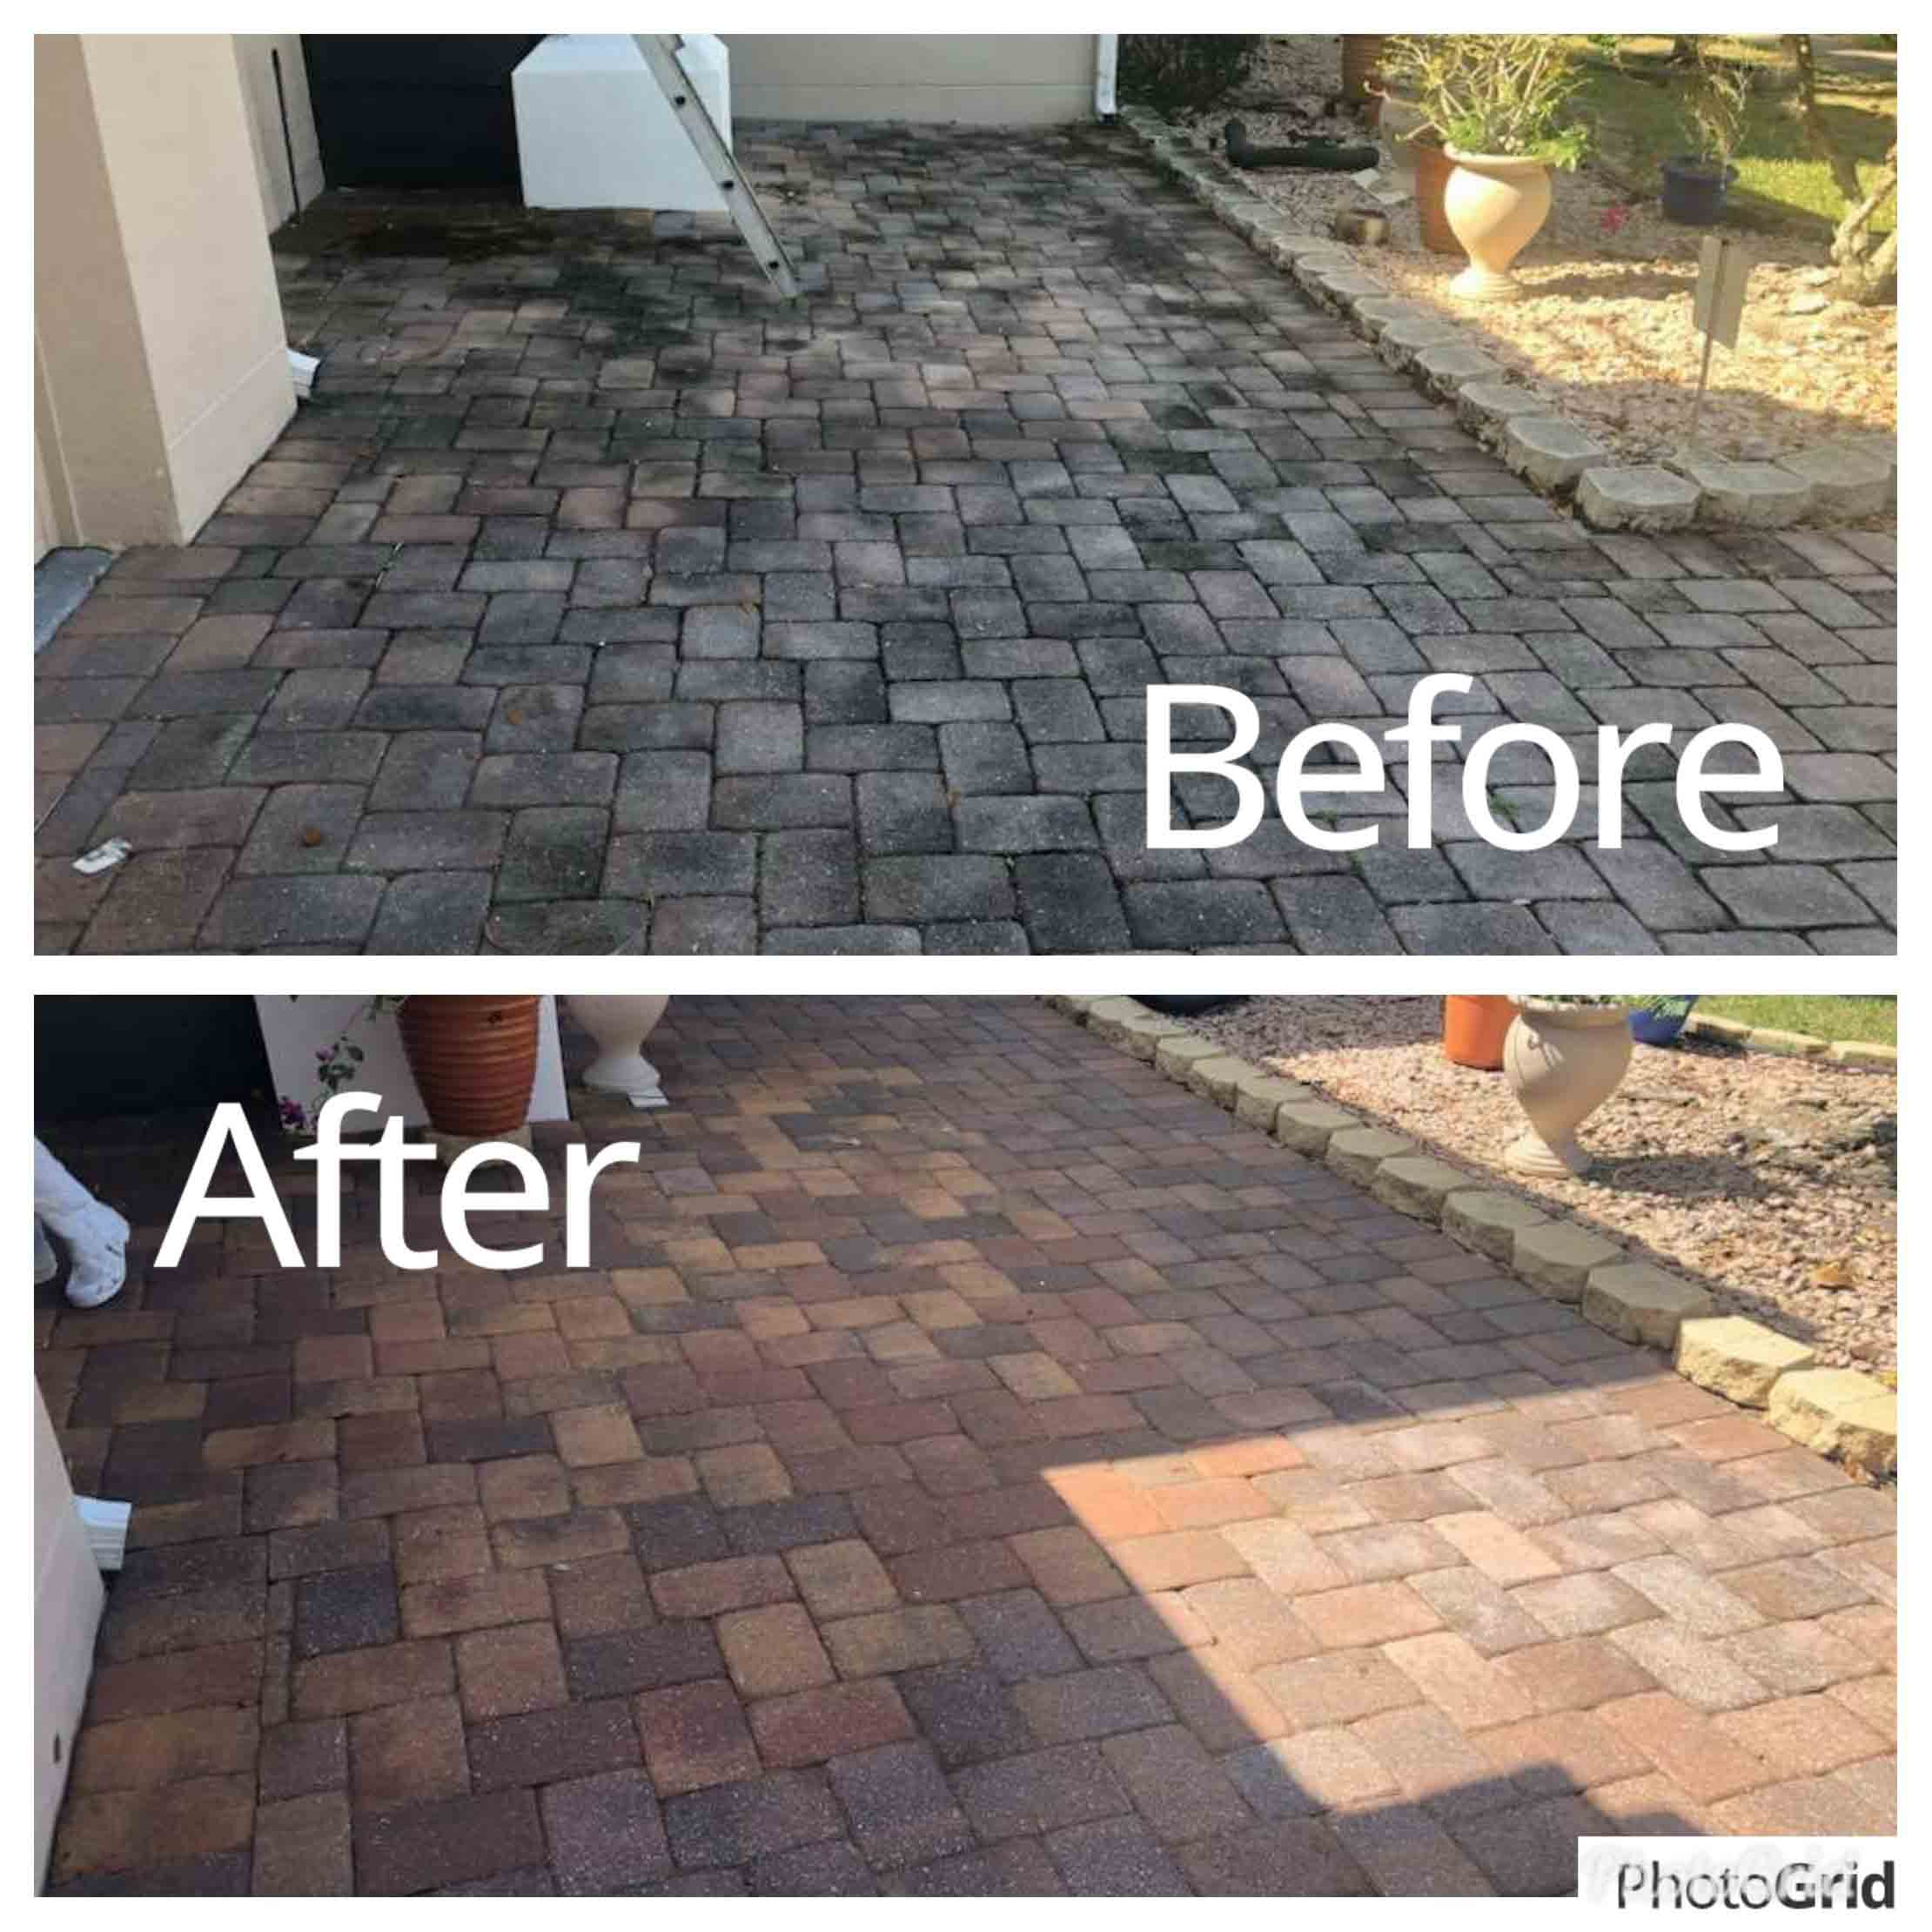 Pavers Cleaning Service in Lake Forest, FL